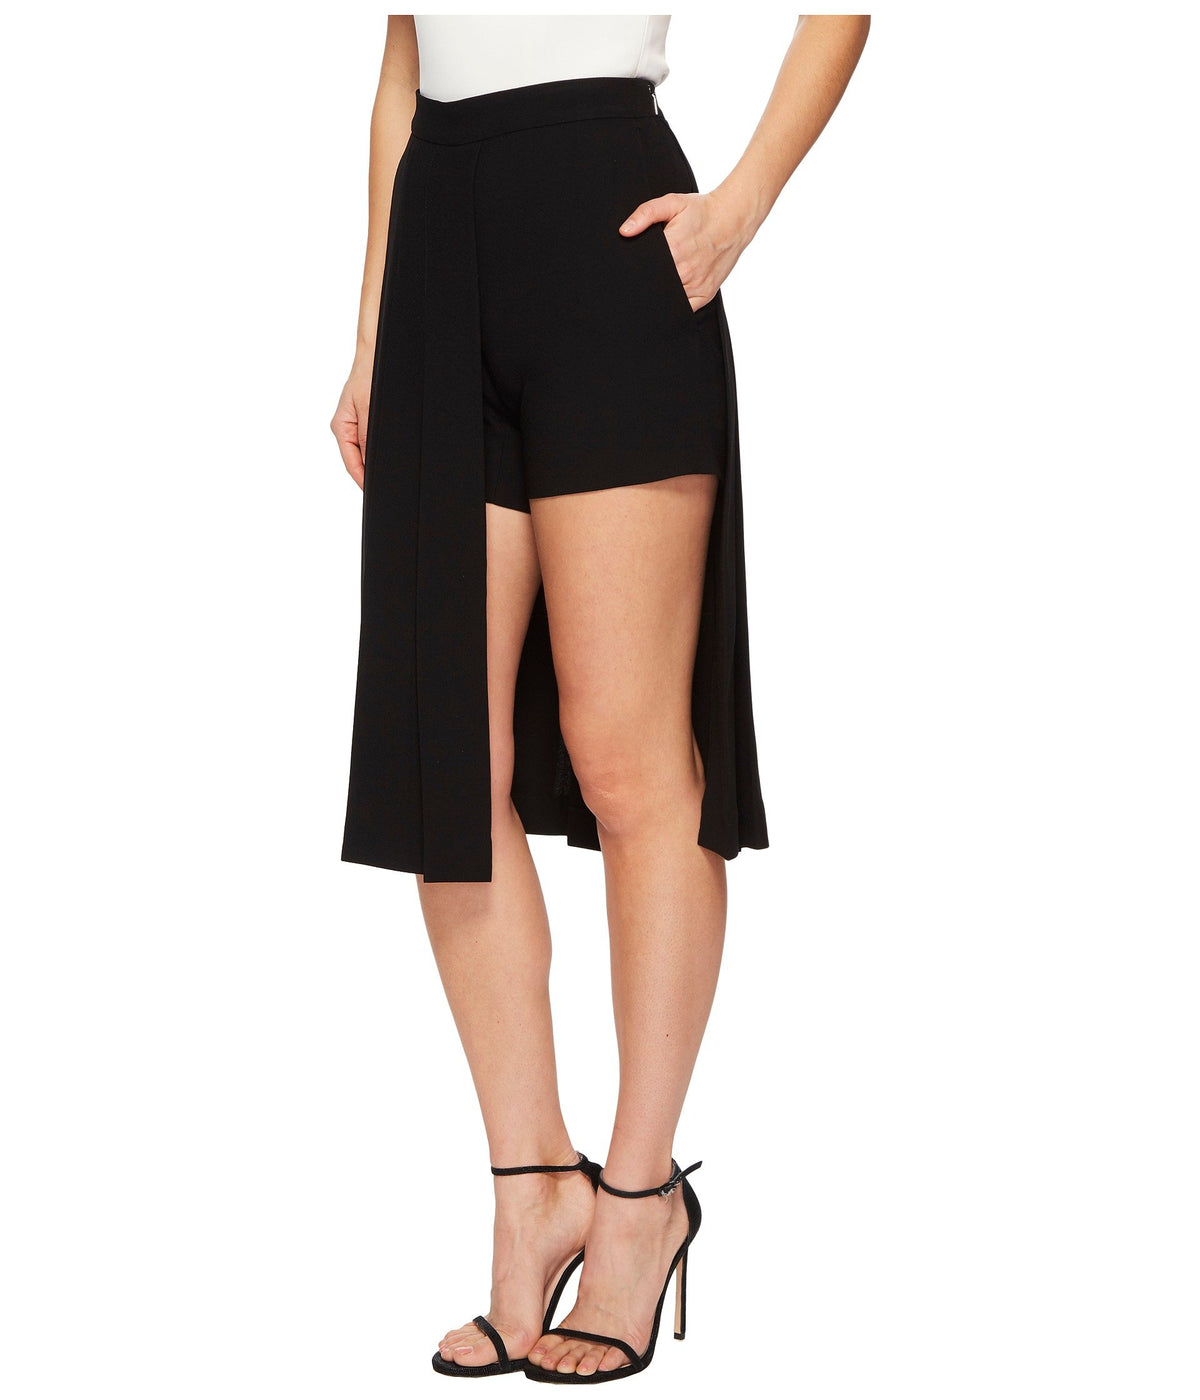 Hybrid Pleated Panel Skirt/Shorts